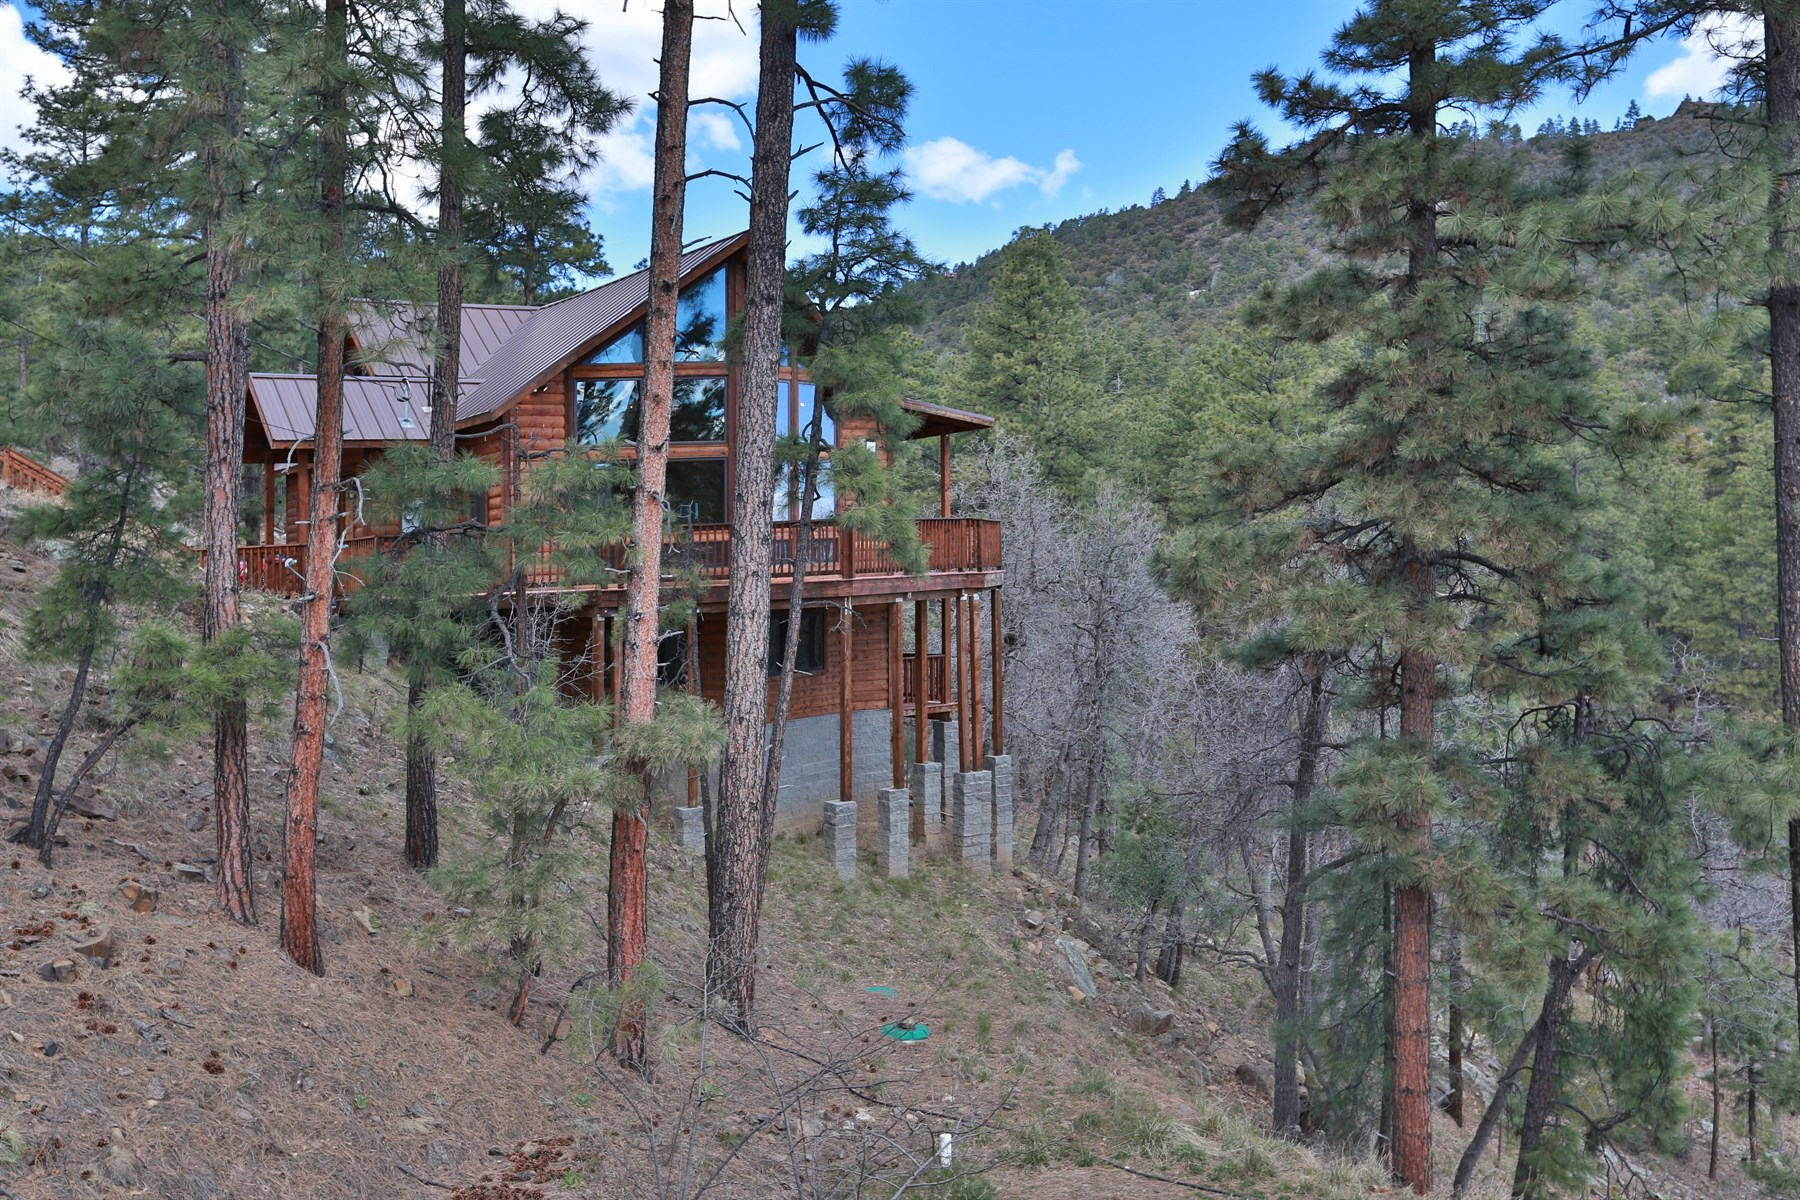 Single Family Home for Sale at Hillside pine wood home in Walker with breathtaking views 5594 S Morning Star Ln Prescott, Arizona, 86303 United States